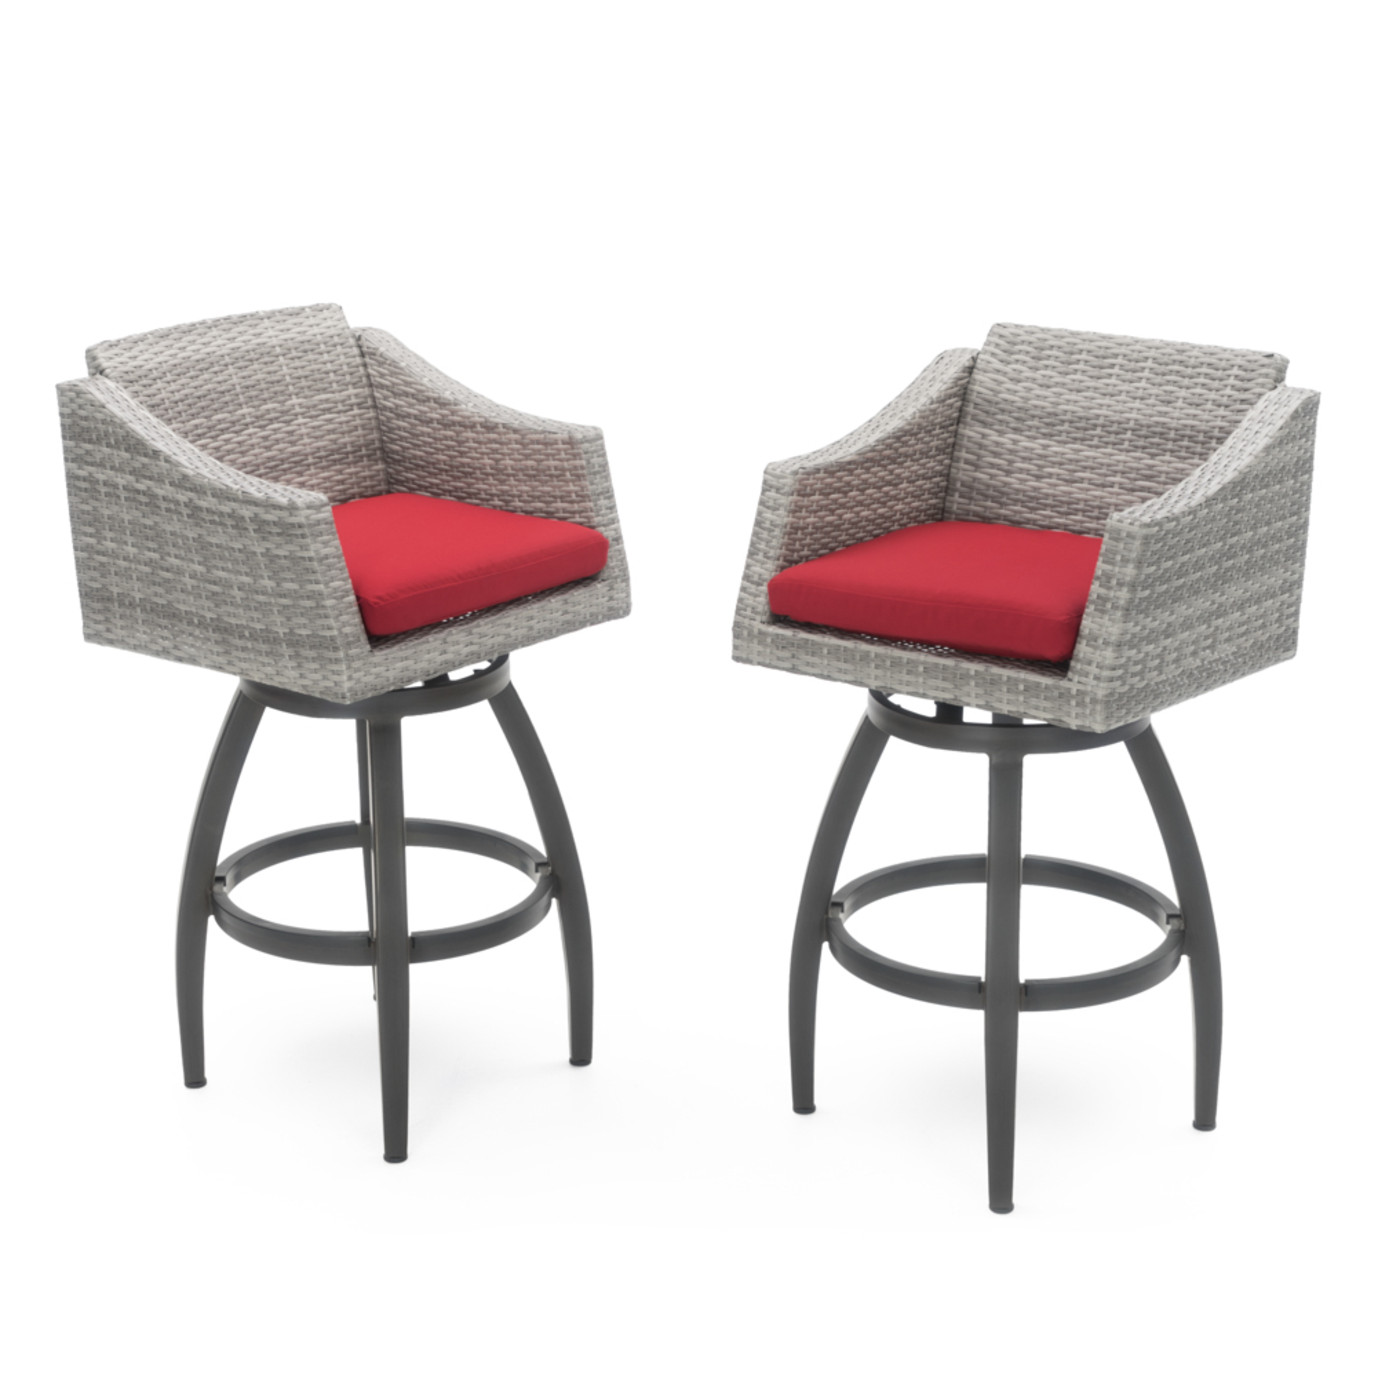 Cannes™ Swivel Barstool 2pk - Sunset Red